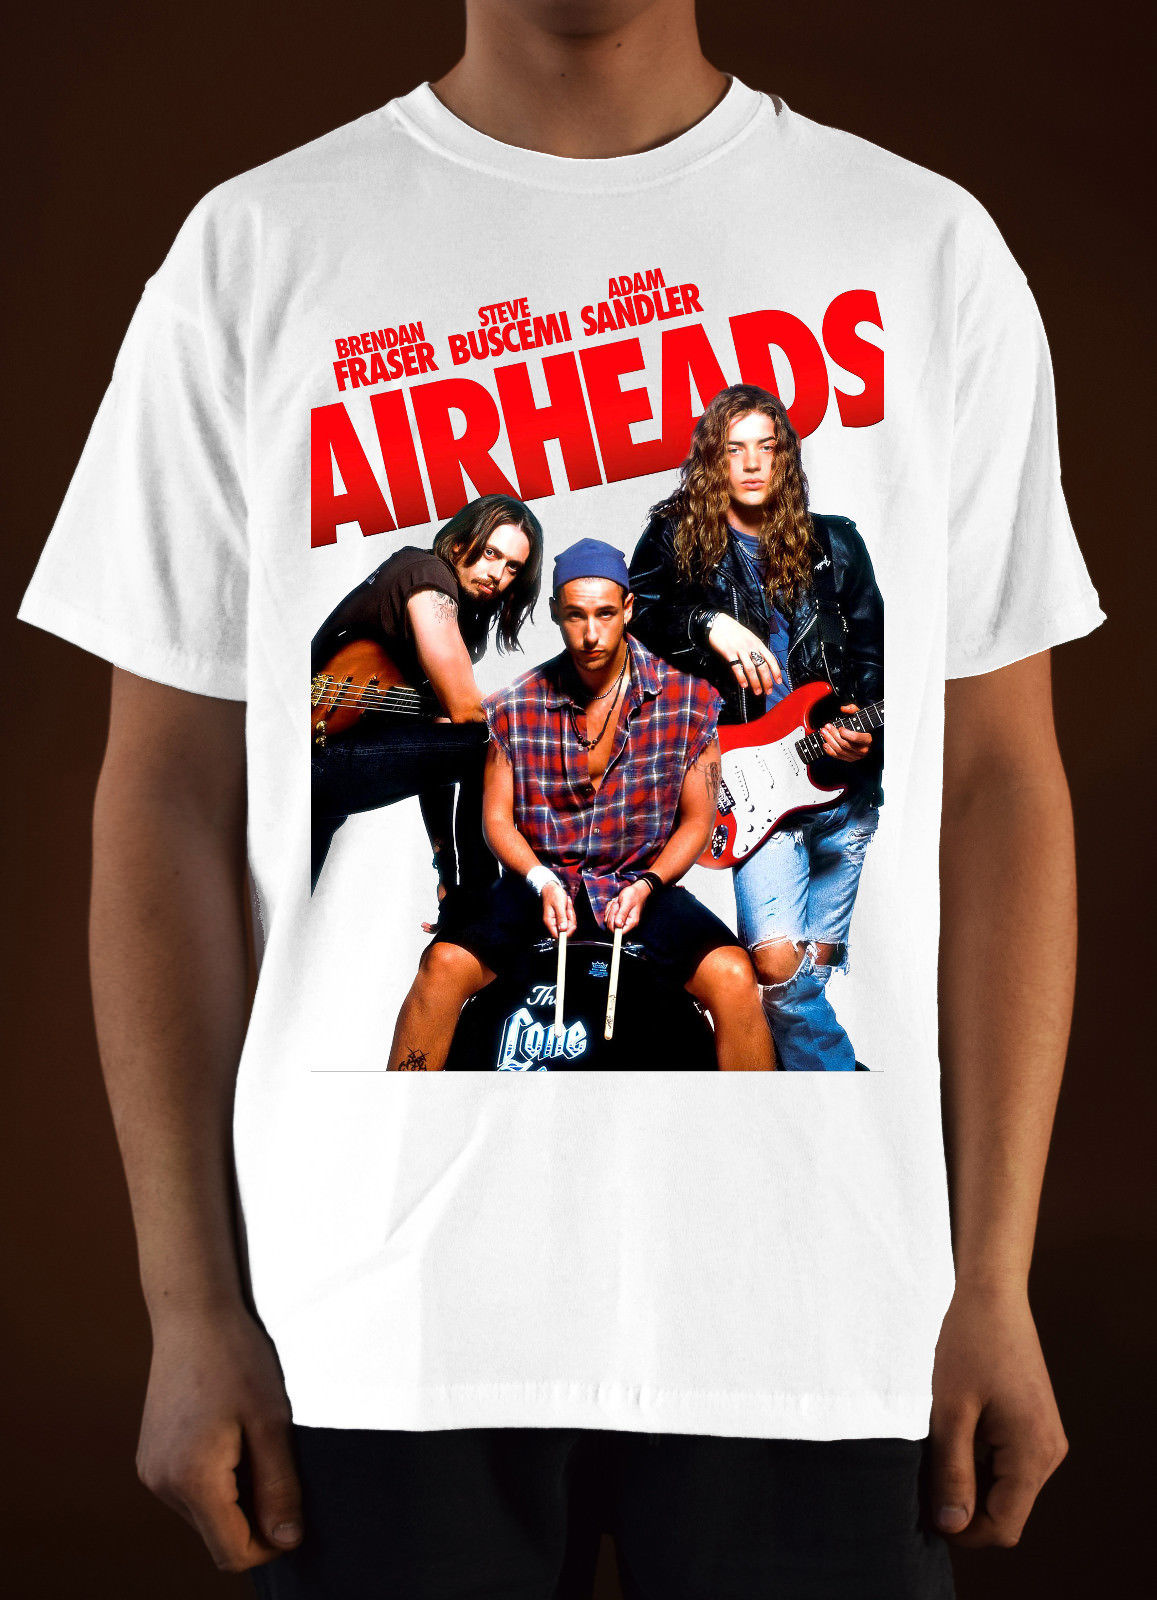 AIRHEADS Movie poster ver. 2 Adam Sandler T-Shirt (White) S-3XL Men Tee Shirt Tops Short Sleeve Cotton Fitness T-Shirts image